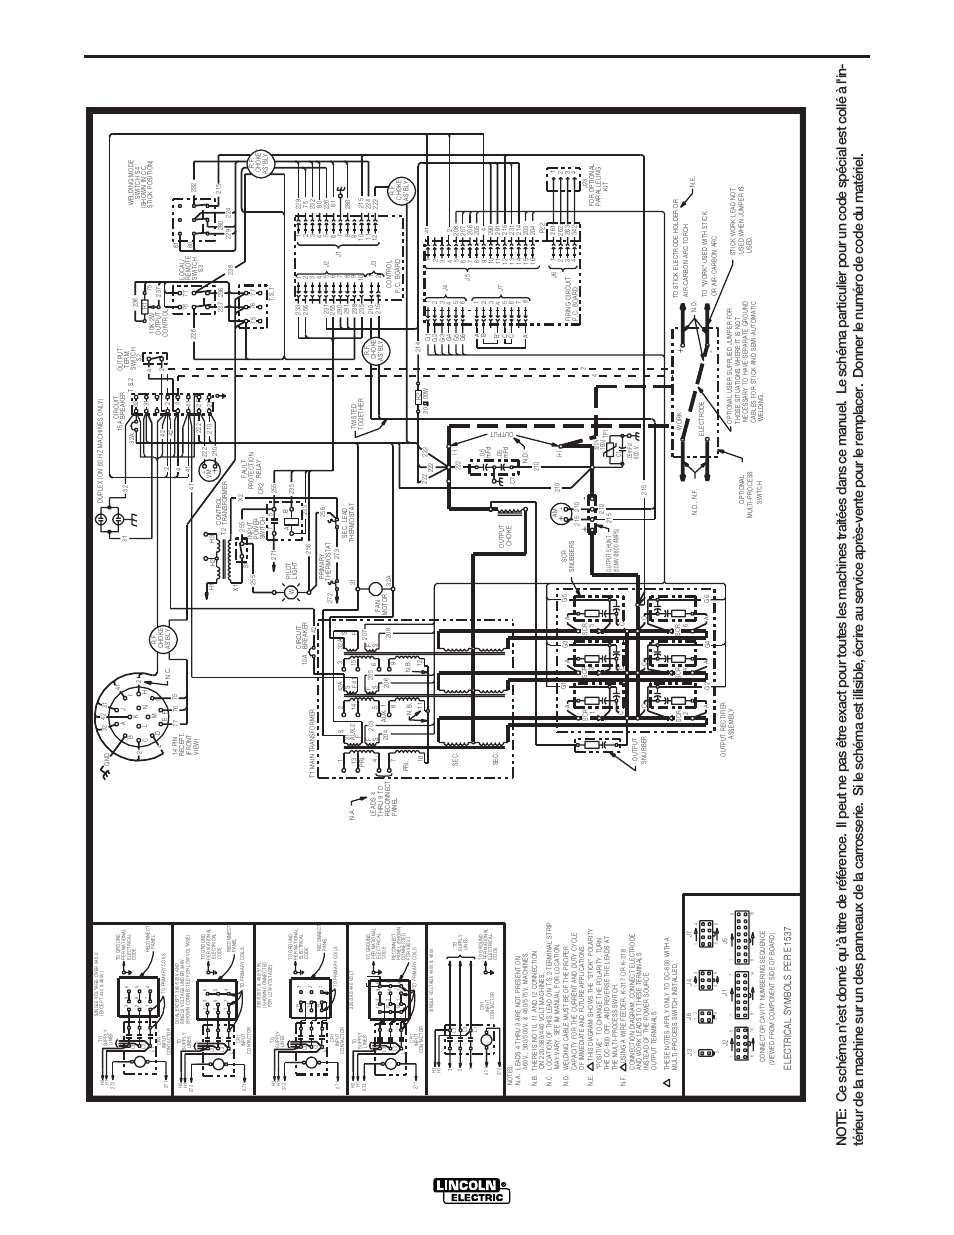 lincoln 250 wiring diagram wiring library HVAC Schematic 1997 Lincoln Continental dorable lincoln sa 250 welder wiring diagram gallery everything lincoln ranger 250 gxt